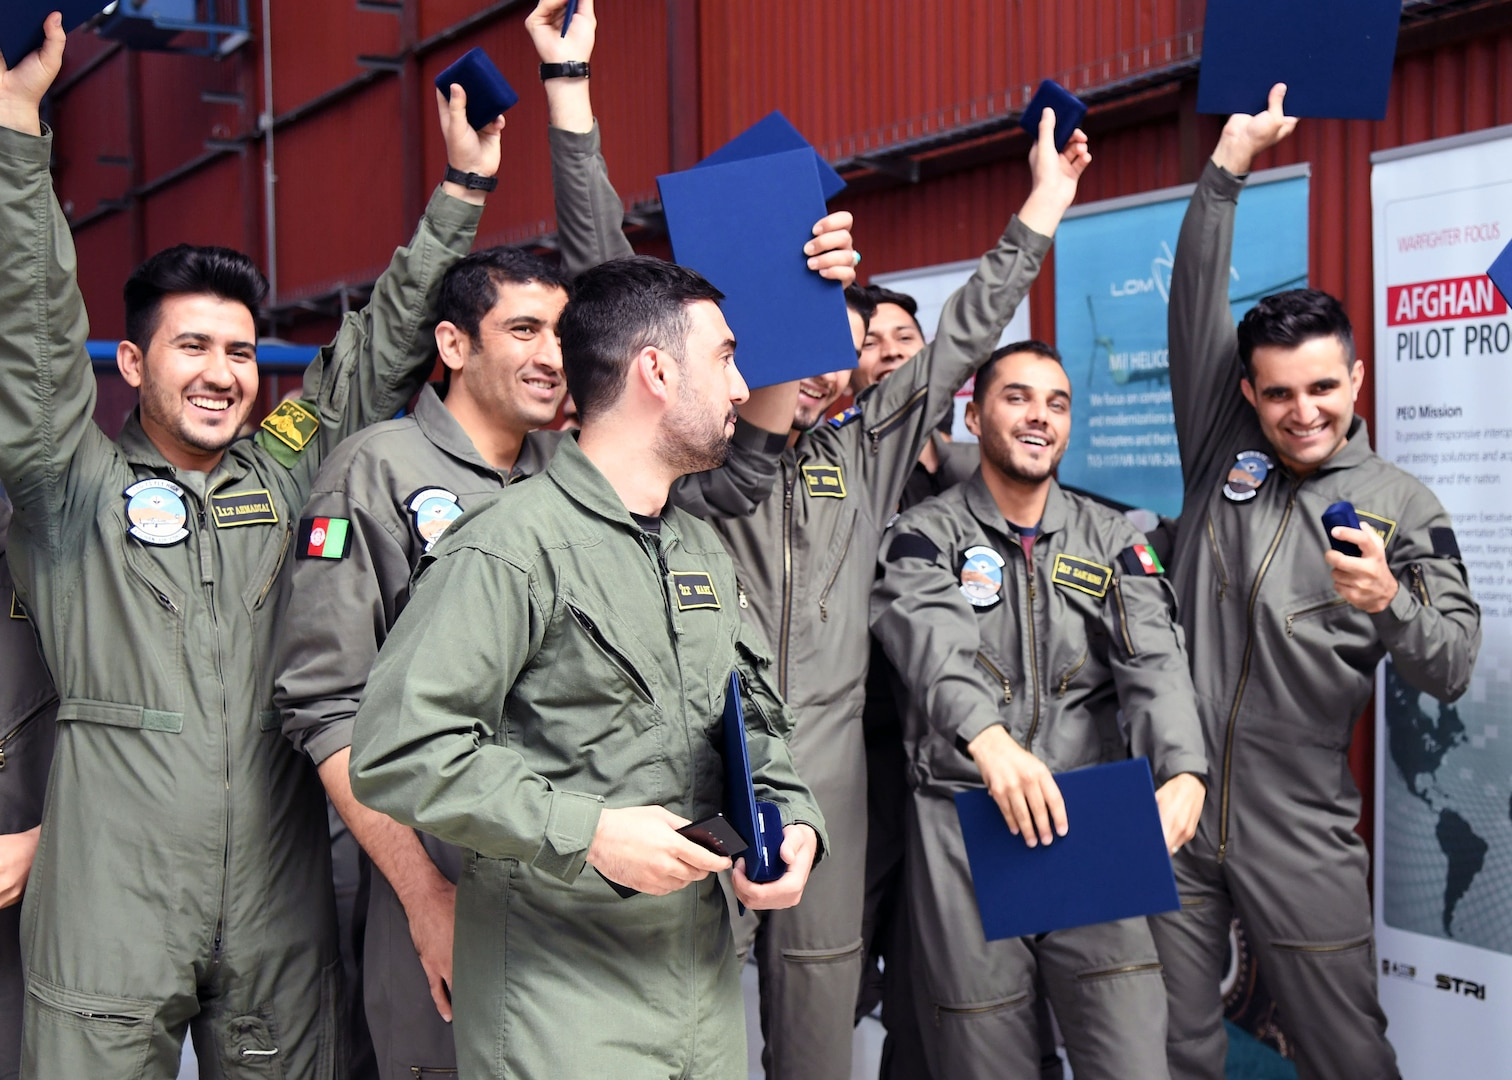 The Afghan Air Force's newest pilots hold up their certificates in celebration after having graduated from Initial Entry Fixed-Wing school at LOM Praha's flight training center, Czech Republic, June 27, 2018. The graduates will return to Afghanistan this week to either continue their training on one of the AAF platforms there.